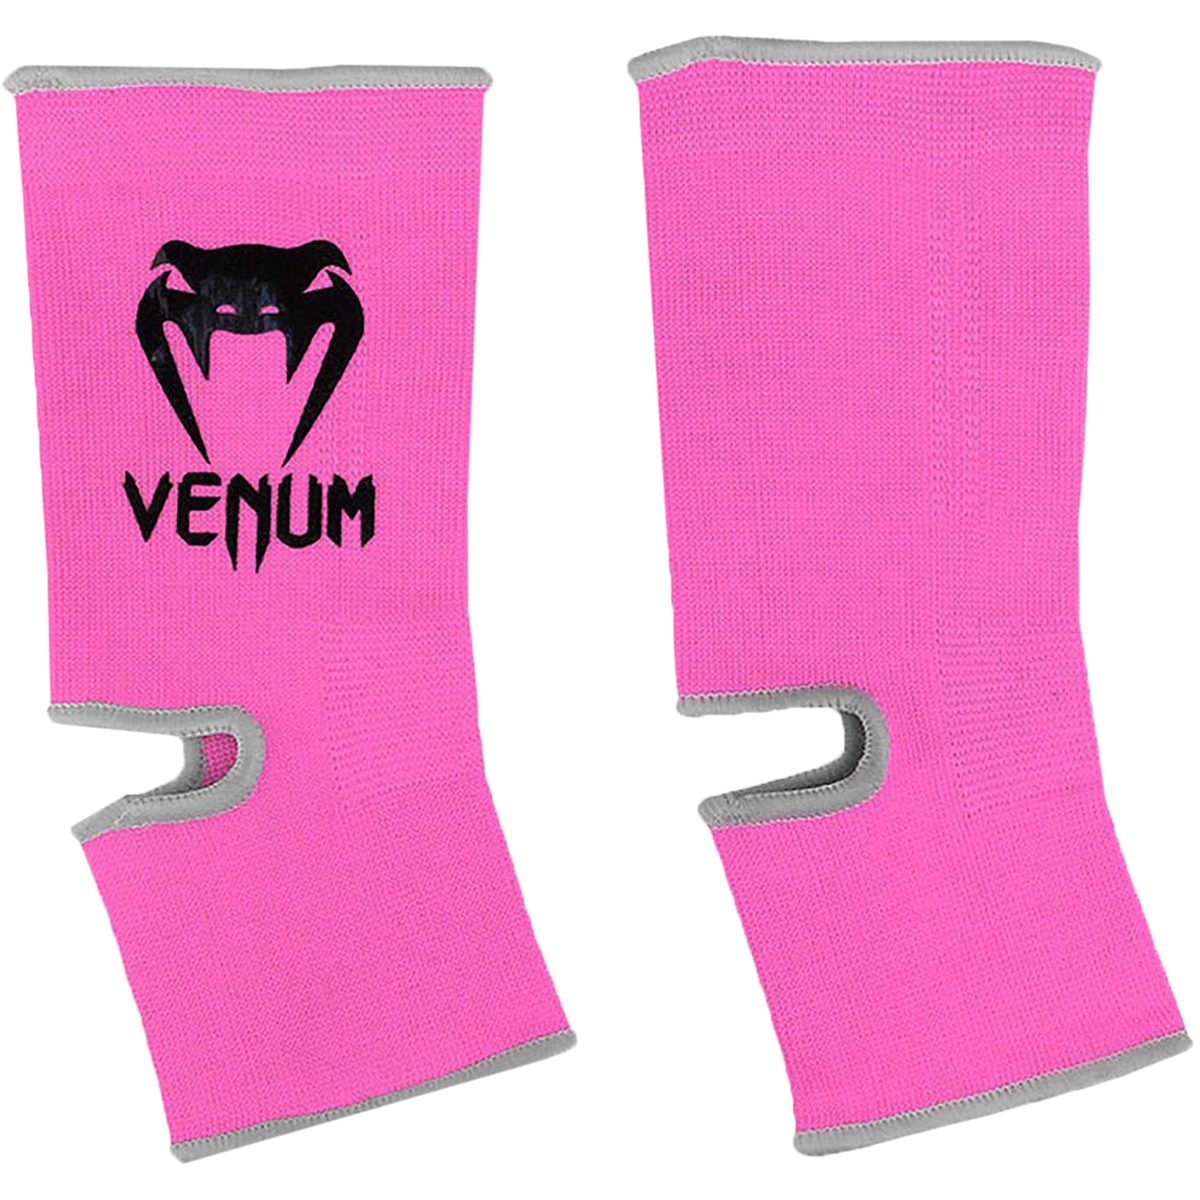 thumbnail 23 - Venum Kontact Slip-On MMA Pro Ankle Support Guards